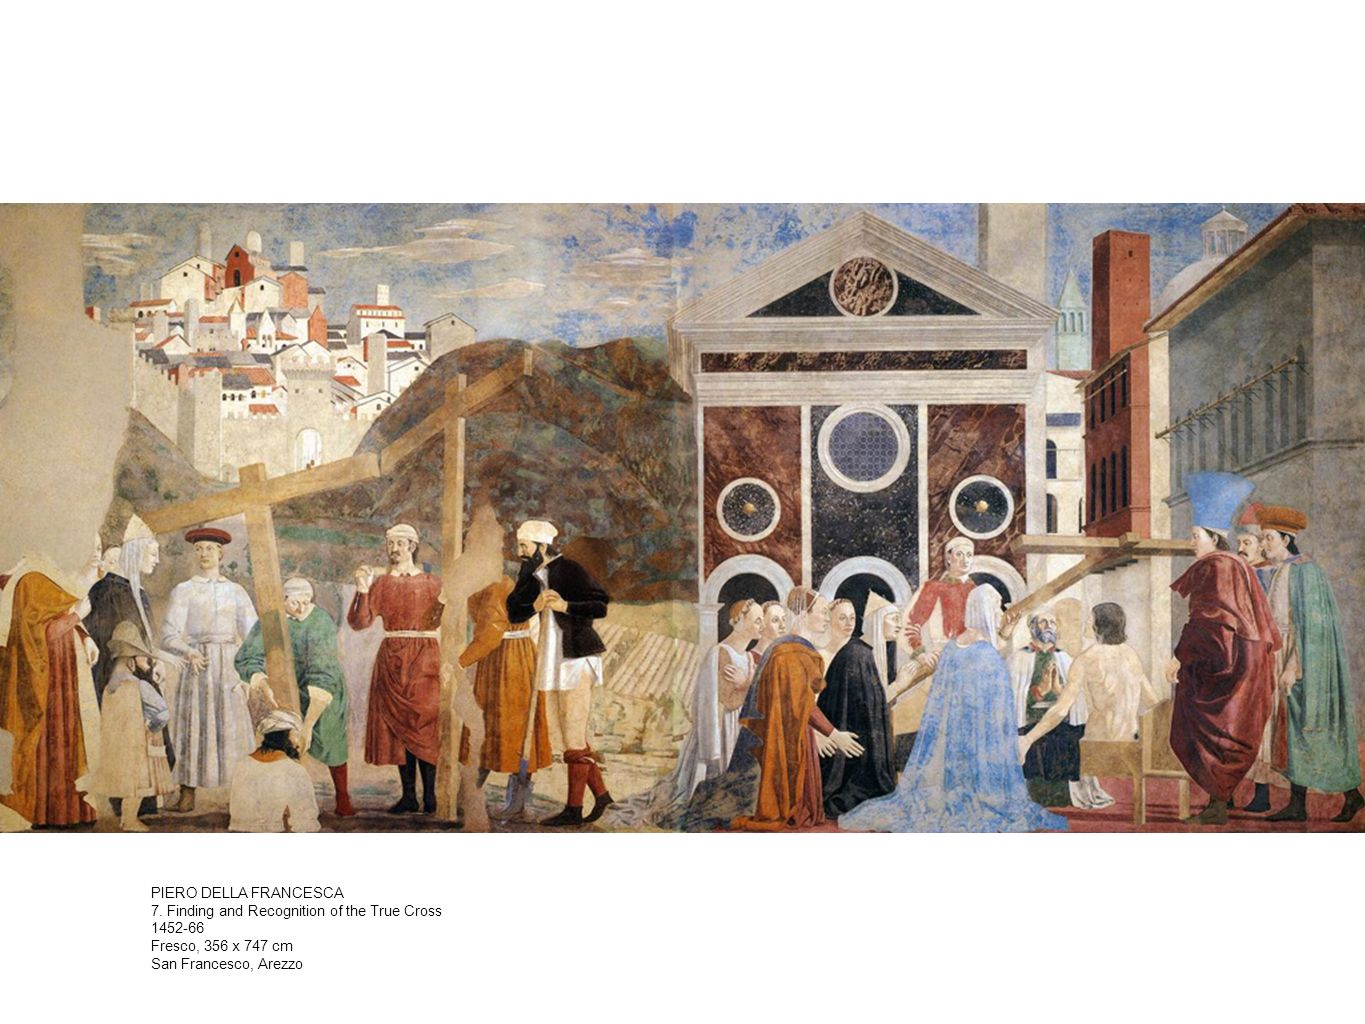 PIERO DELLA FRANCESCA 7. Finding and Recognition of the True Cross. 1452-66. Fresco, 356 x 747 cm.